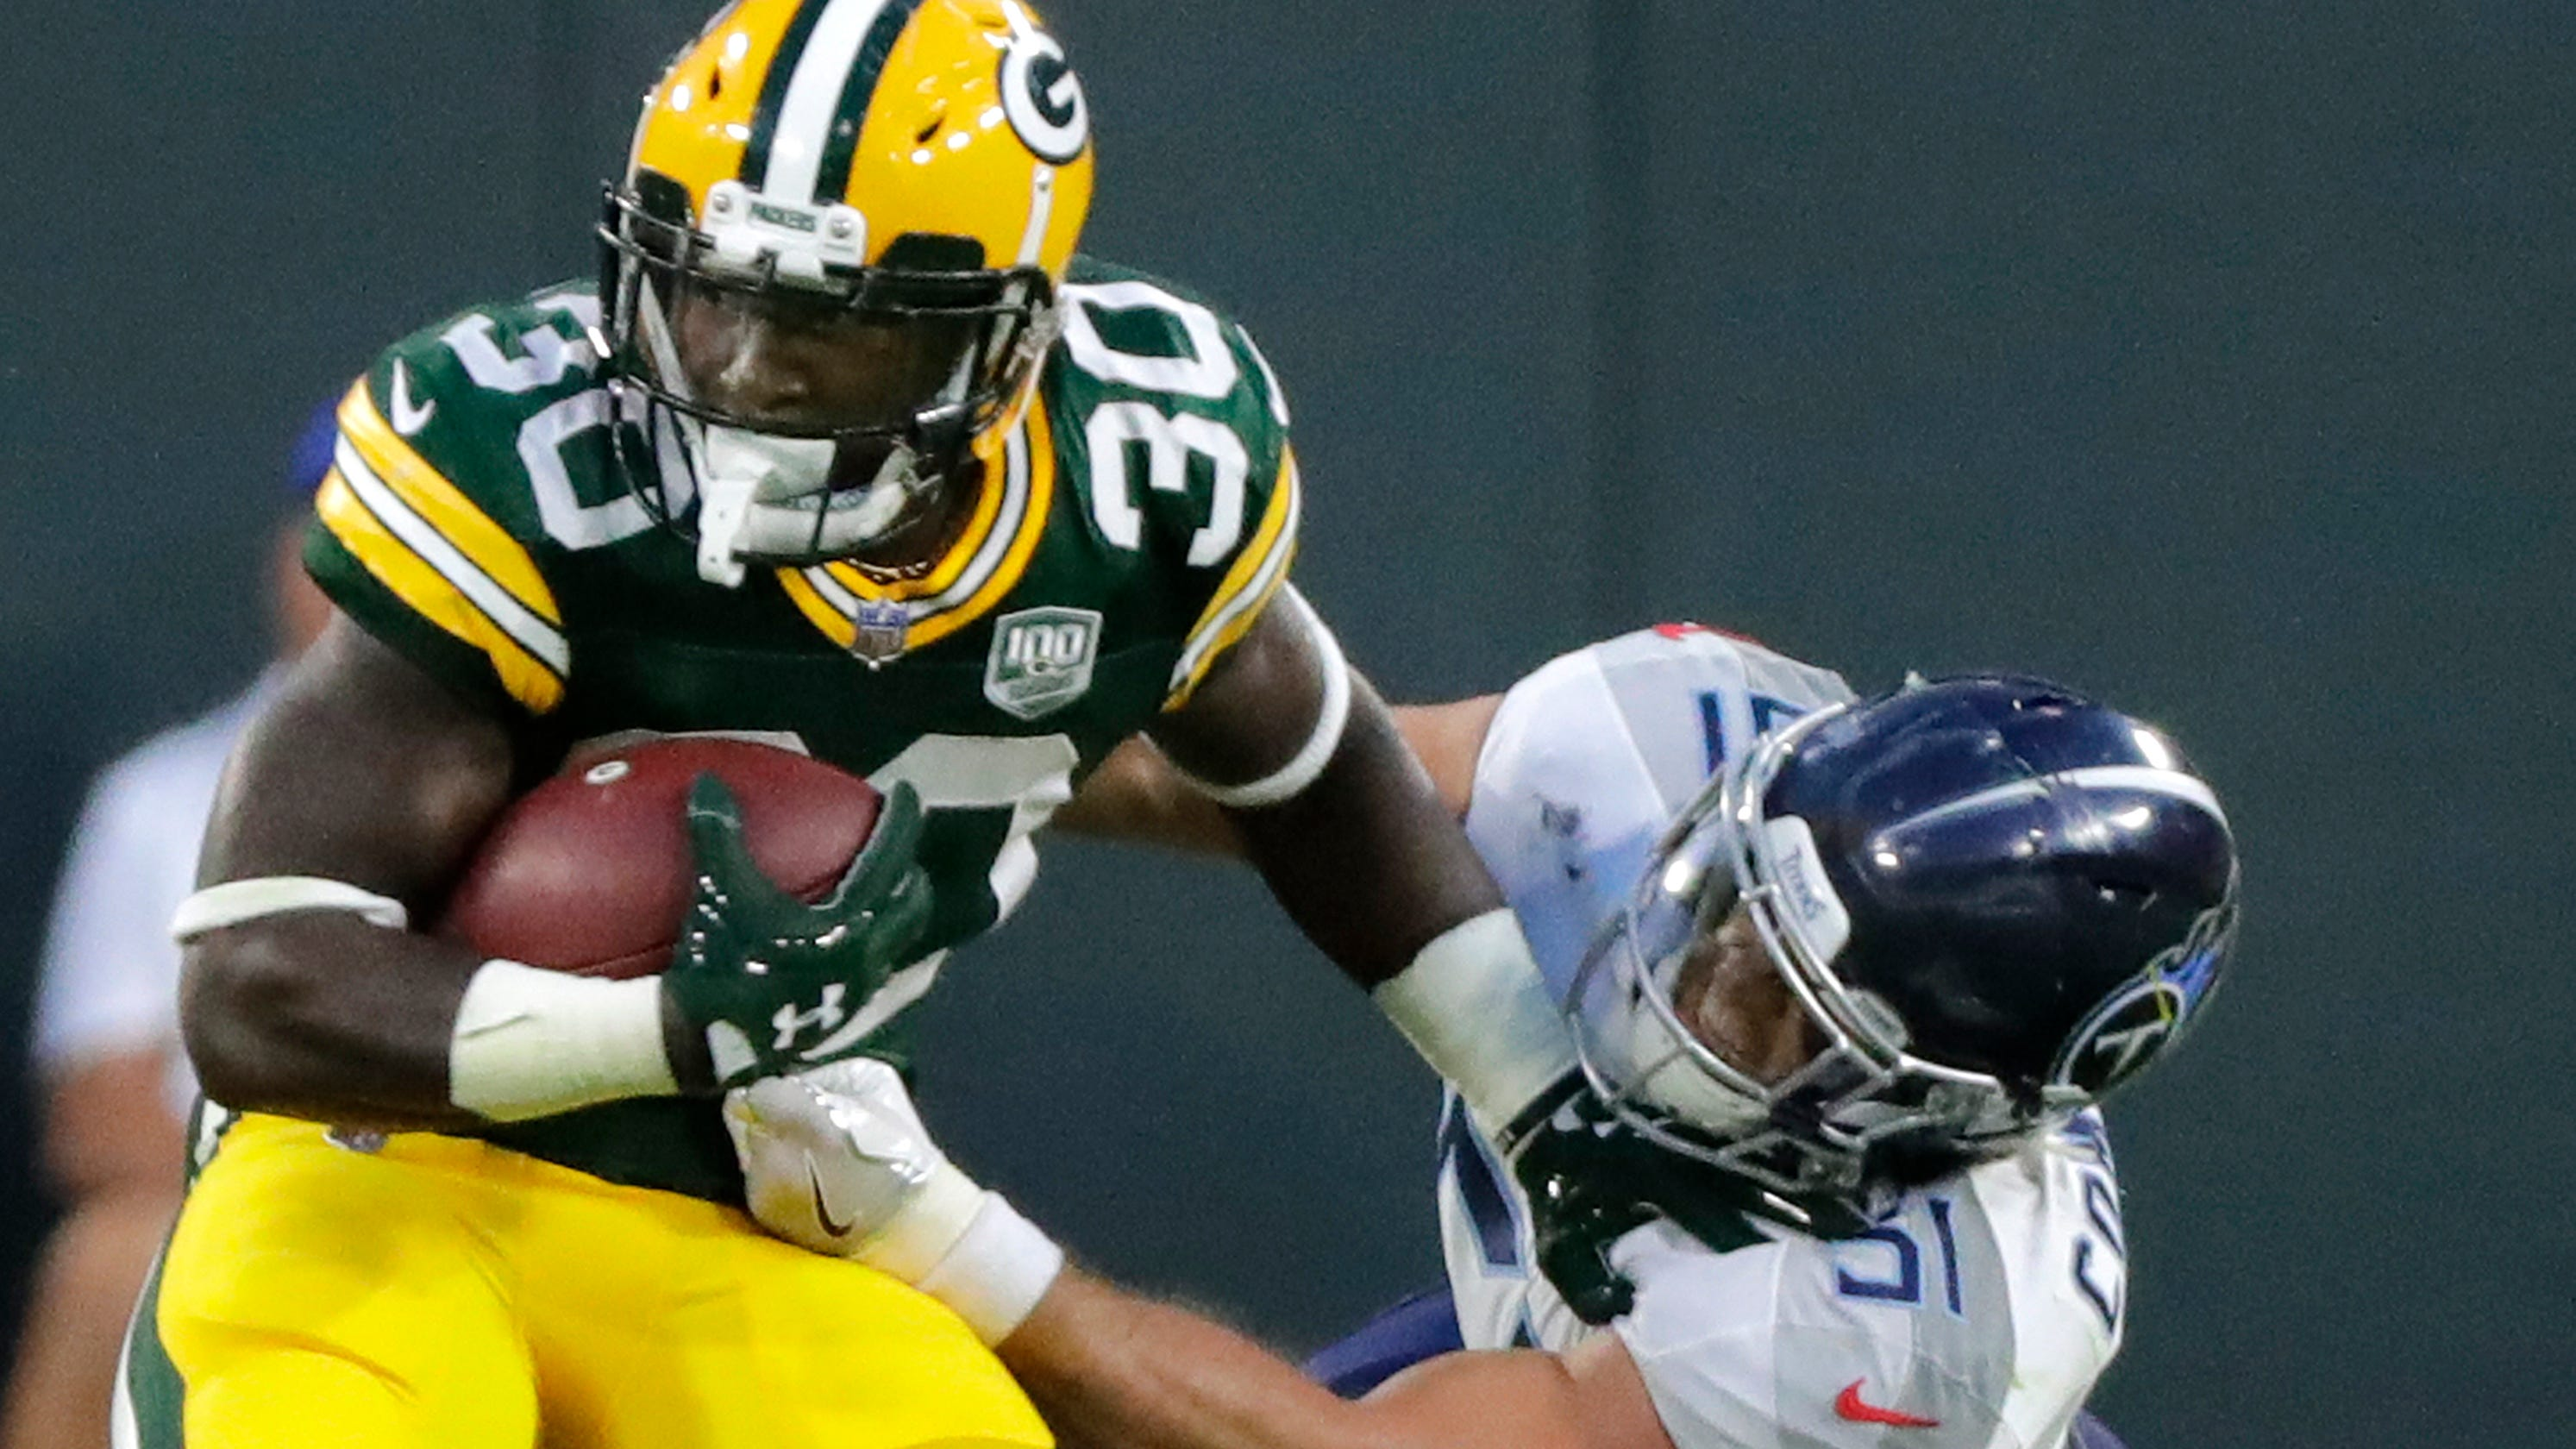 b383e00983f Packers: Jamaal Williams says Steelers LB injured him on dirty play